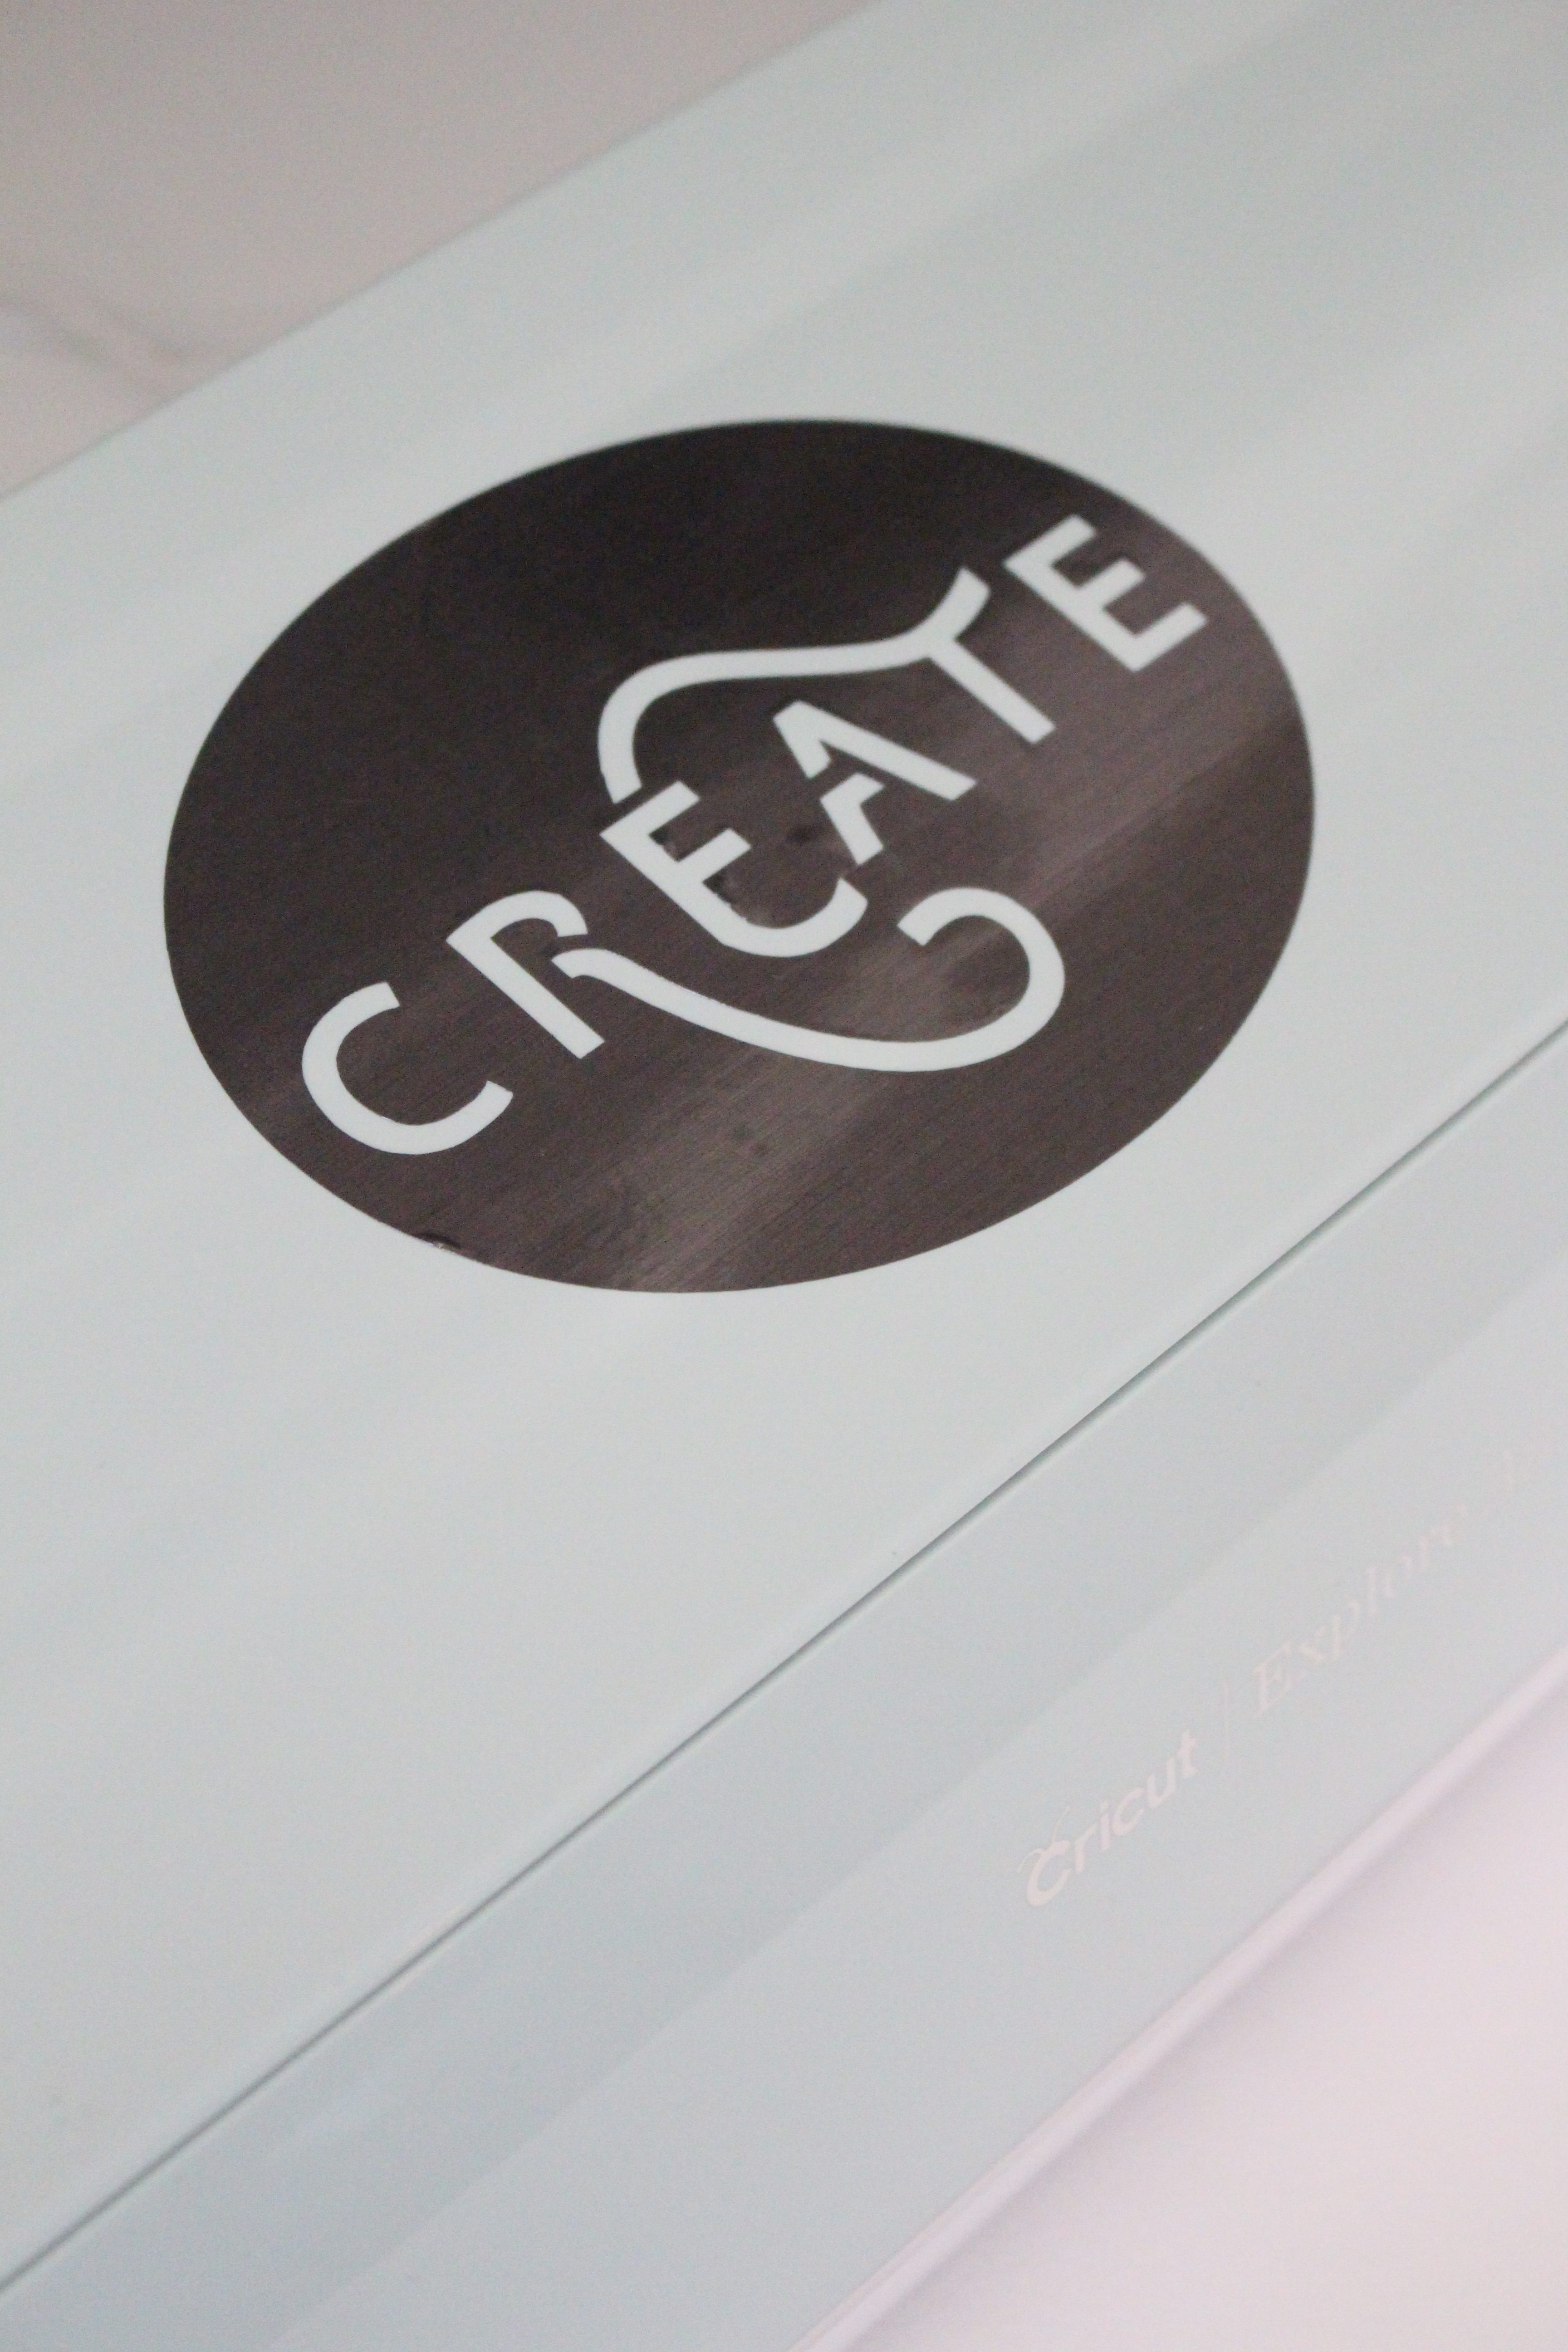 Cricut Explore Air 2- cutting machine- DIY- crafting machine- Cricut- using a writing and cutting machine for crafts